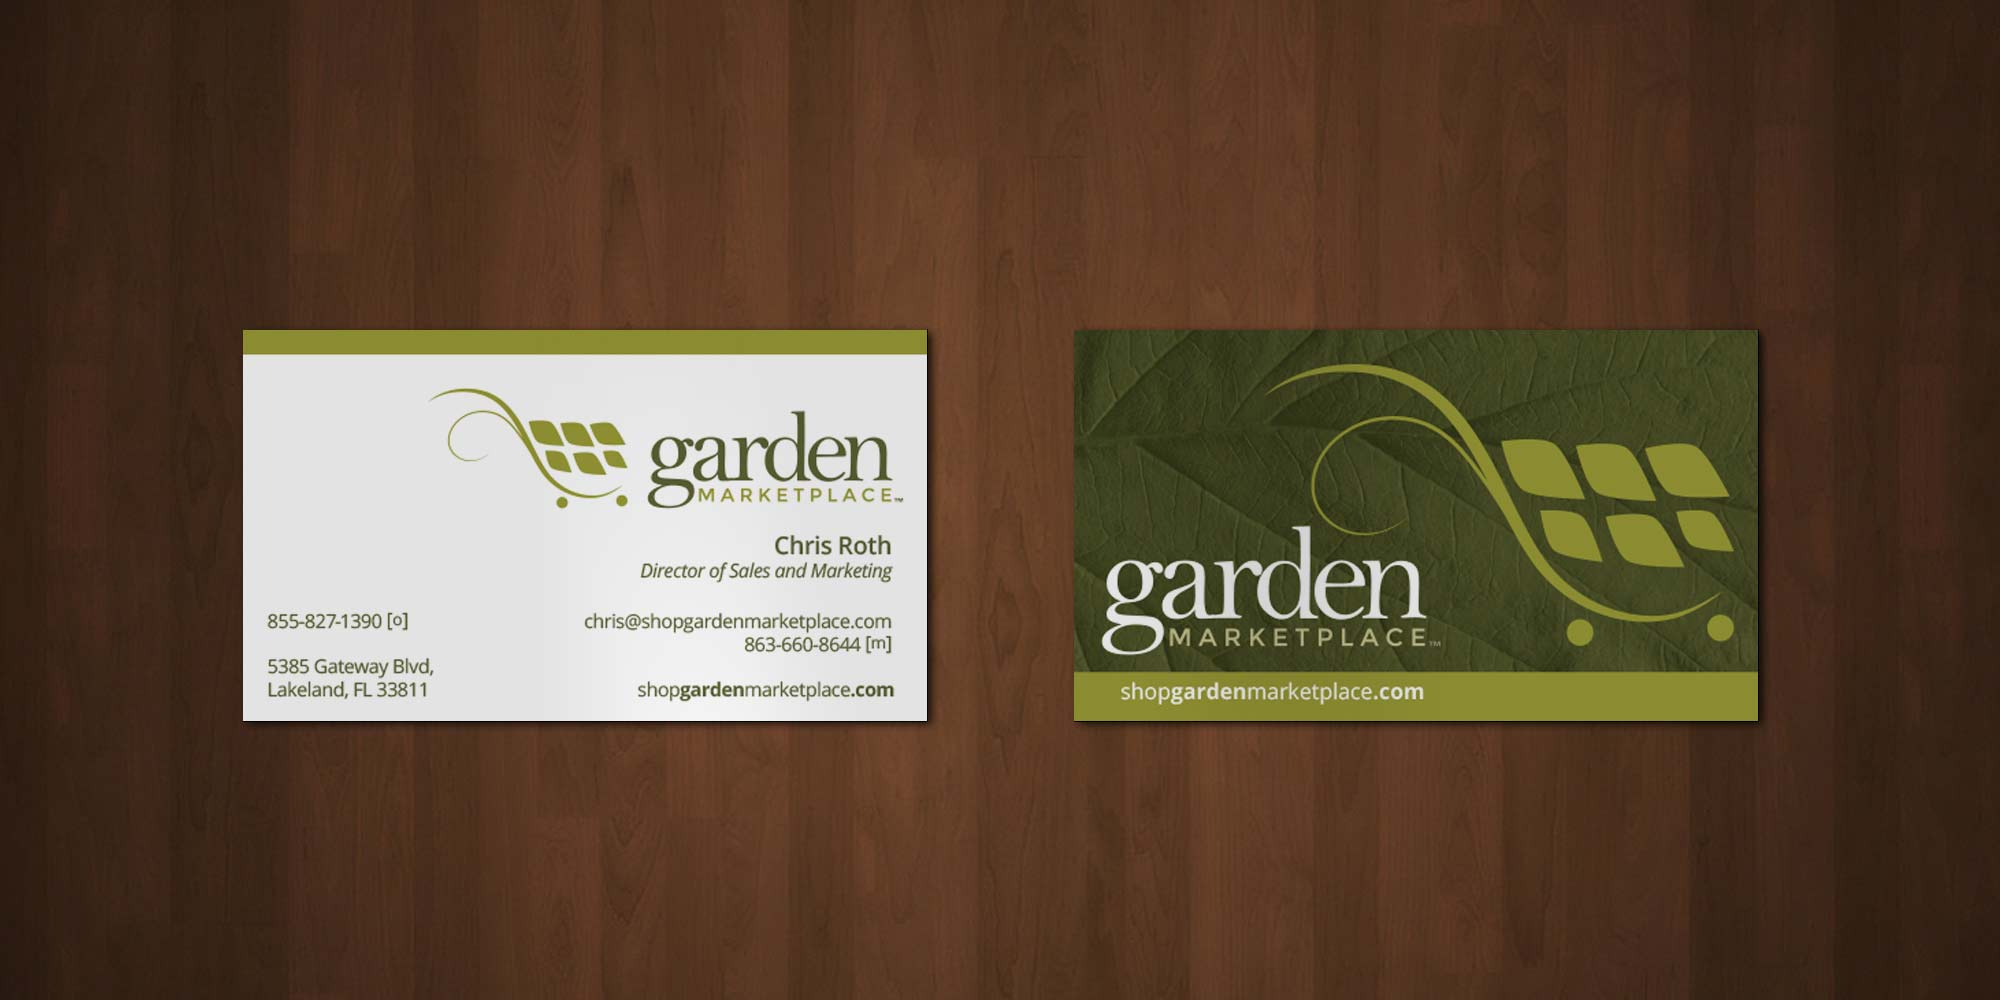 Garden Marketplace Logo – ottocreate.com